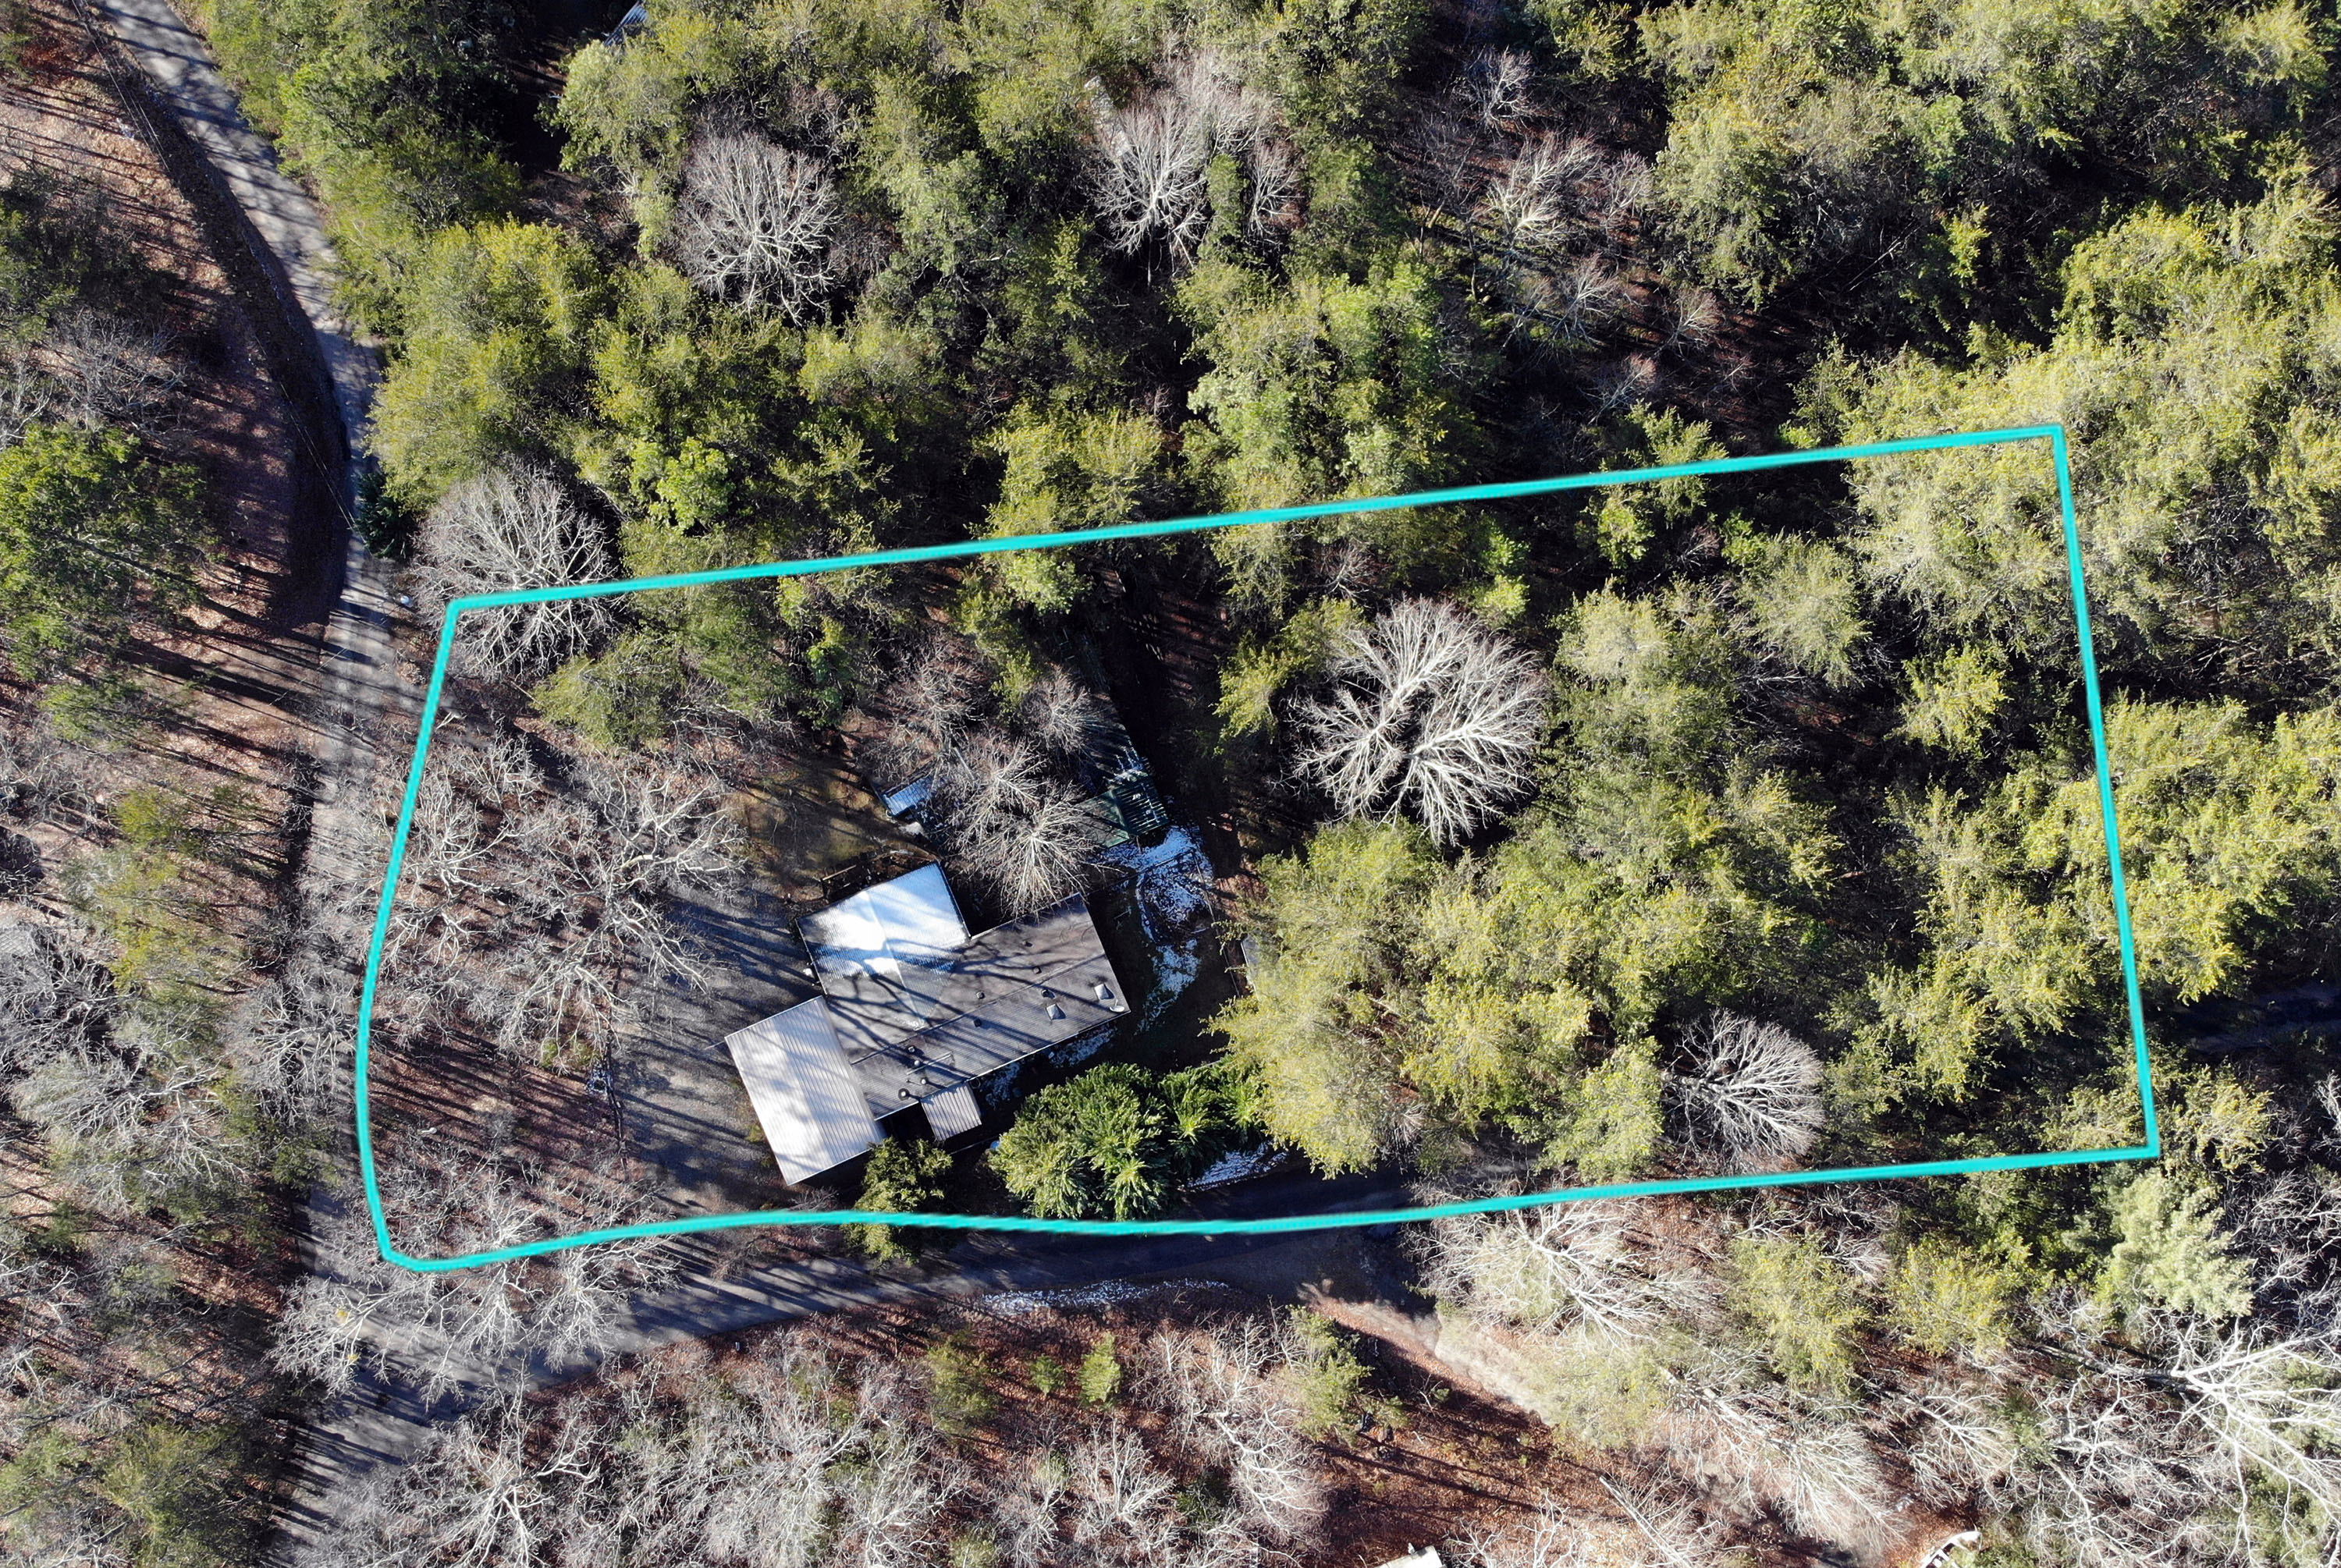 97 Popular Drive, Blairsville, Georgia 30512, 3 Bedrooms Bedrooms, ,2 BathroomsBathrooms,Residential,For Sale,97 Popular Drive,40a87158-18d3-488e-a96b-0d7e04